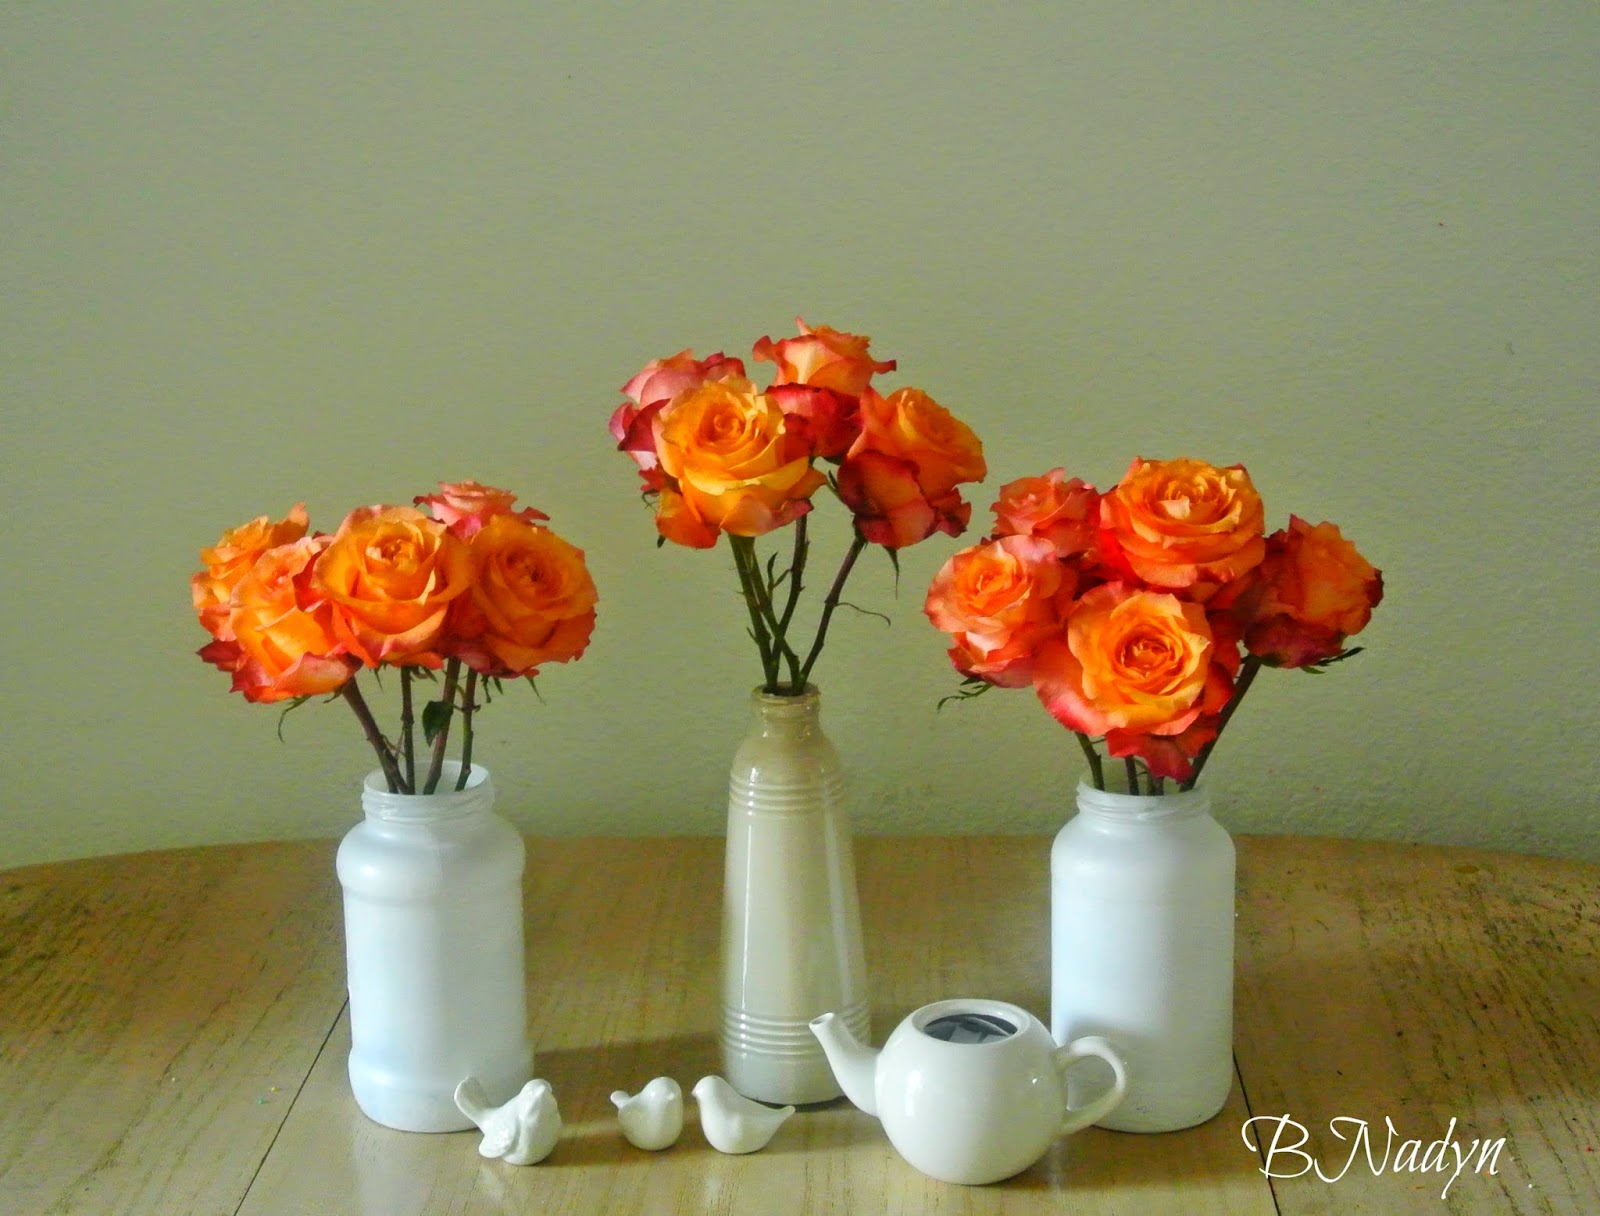 Roses, The Bouq's Co., flowers